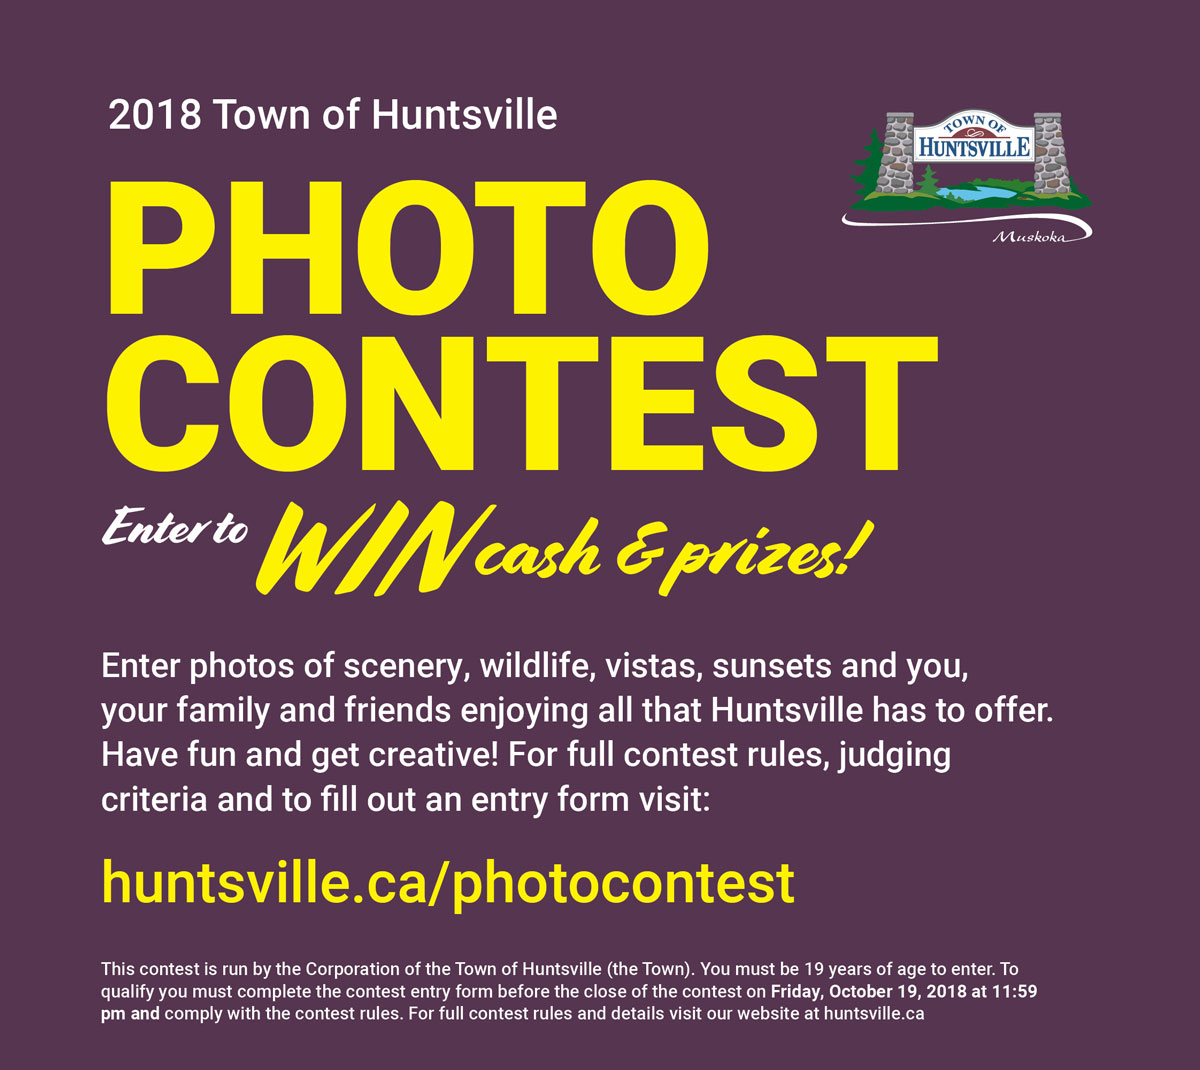 Huntsville Photo Contest